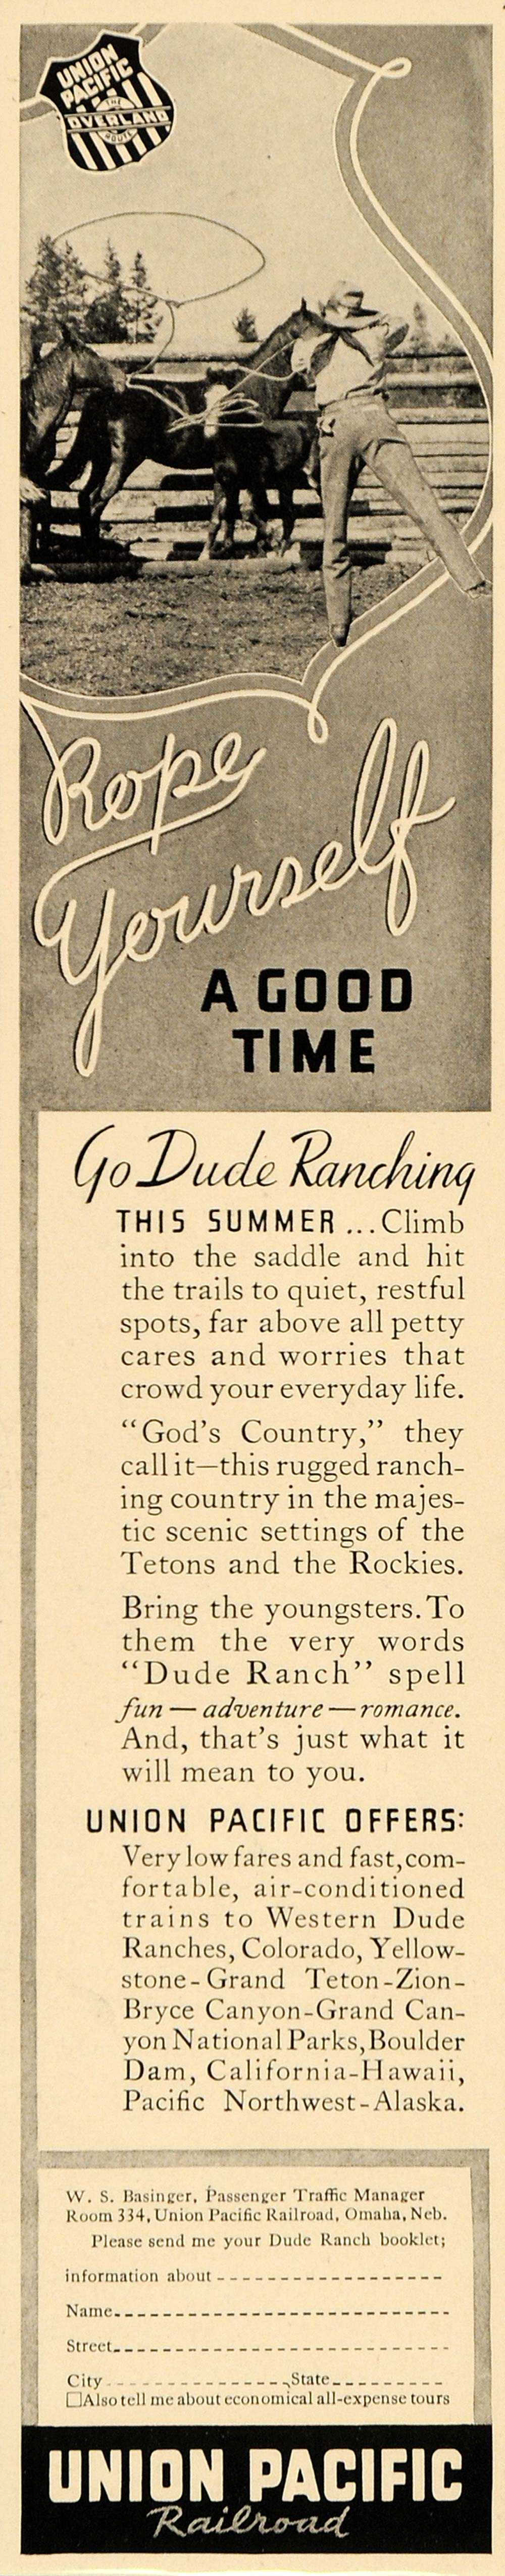 1936 Ad Union Pacific Railroad Summer Dude Ranching Fun - ORIGINAL FT9